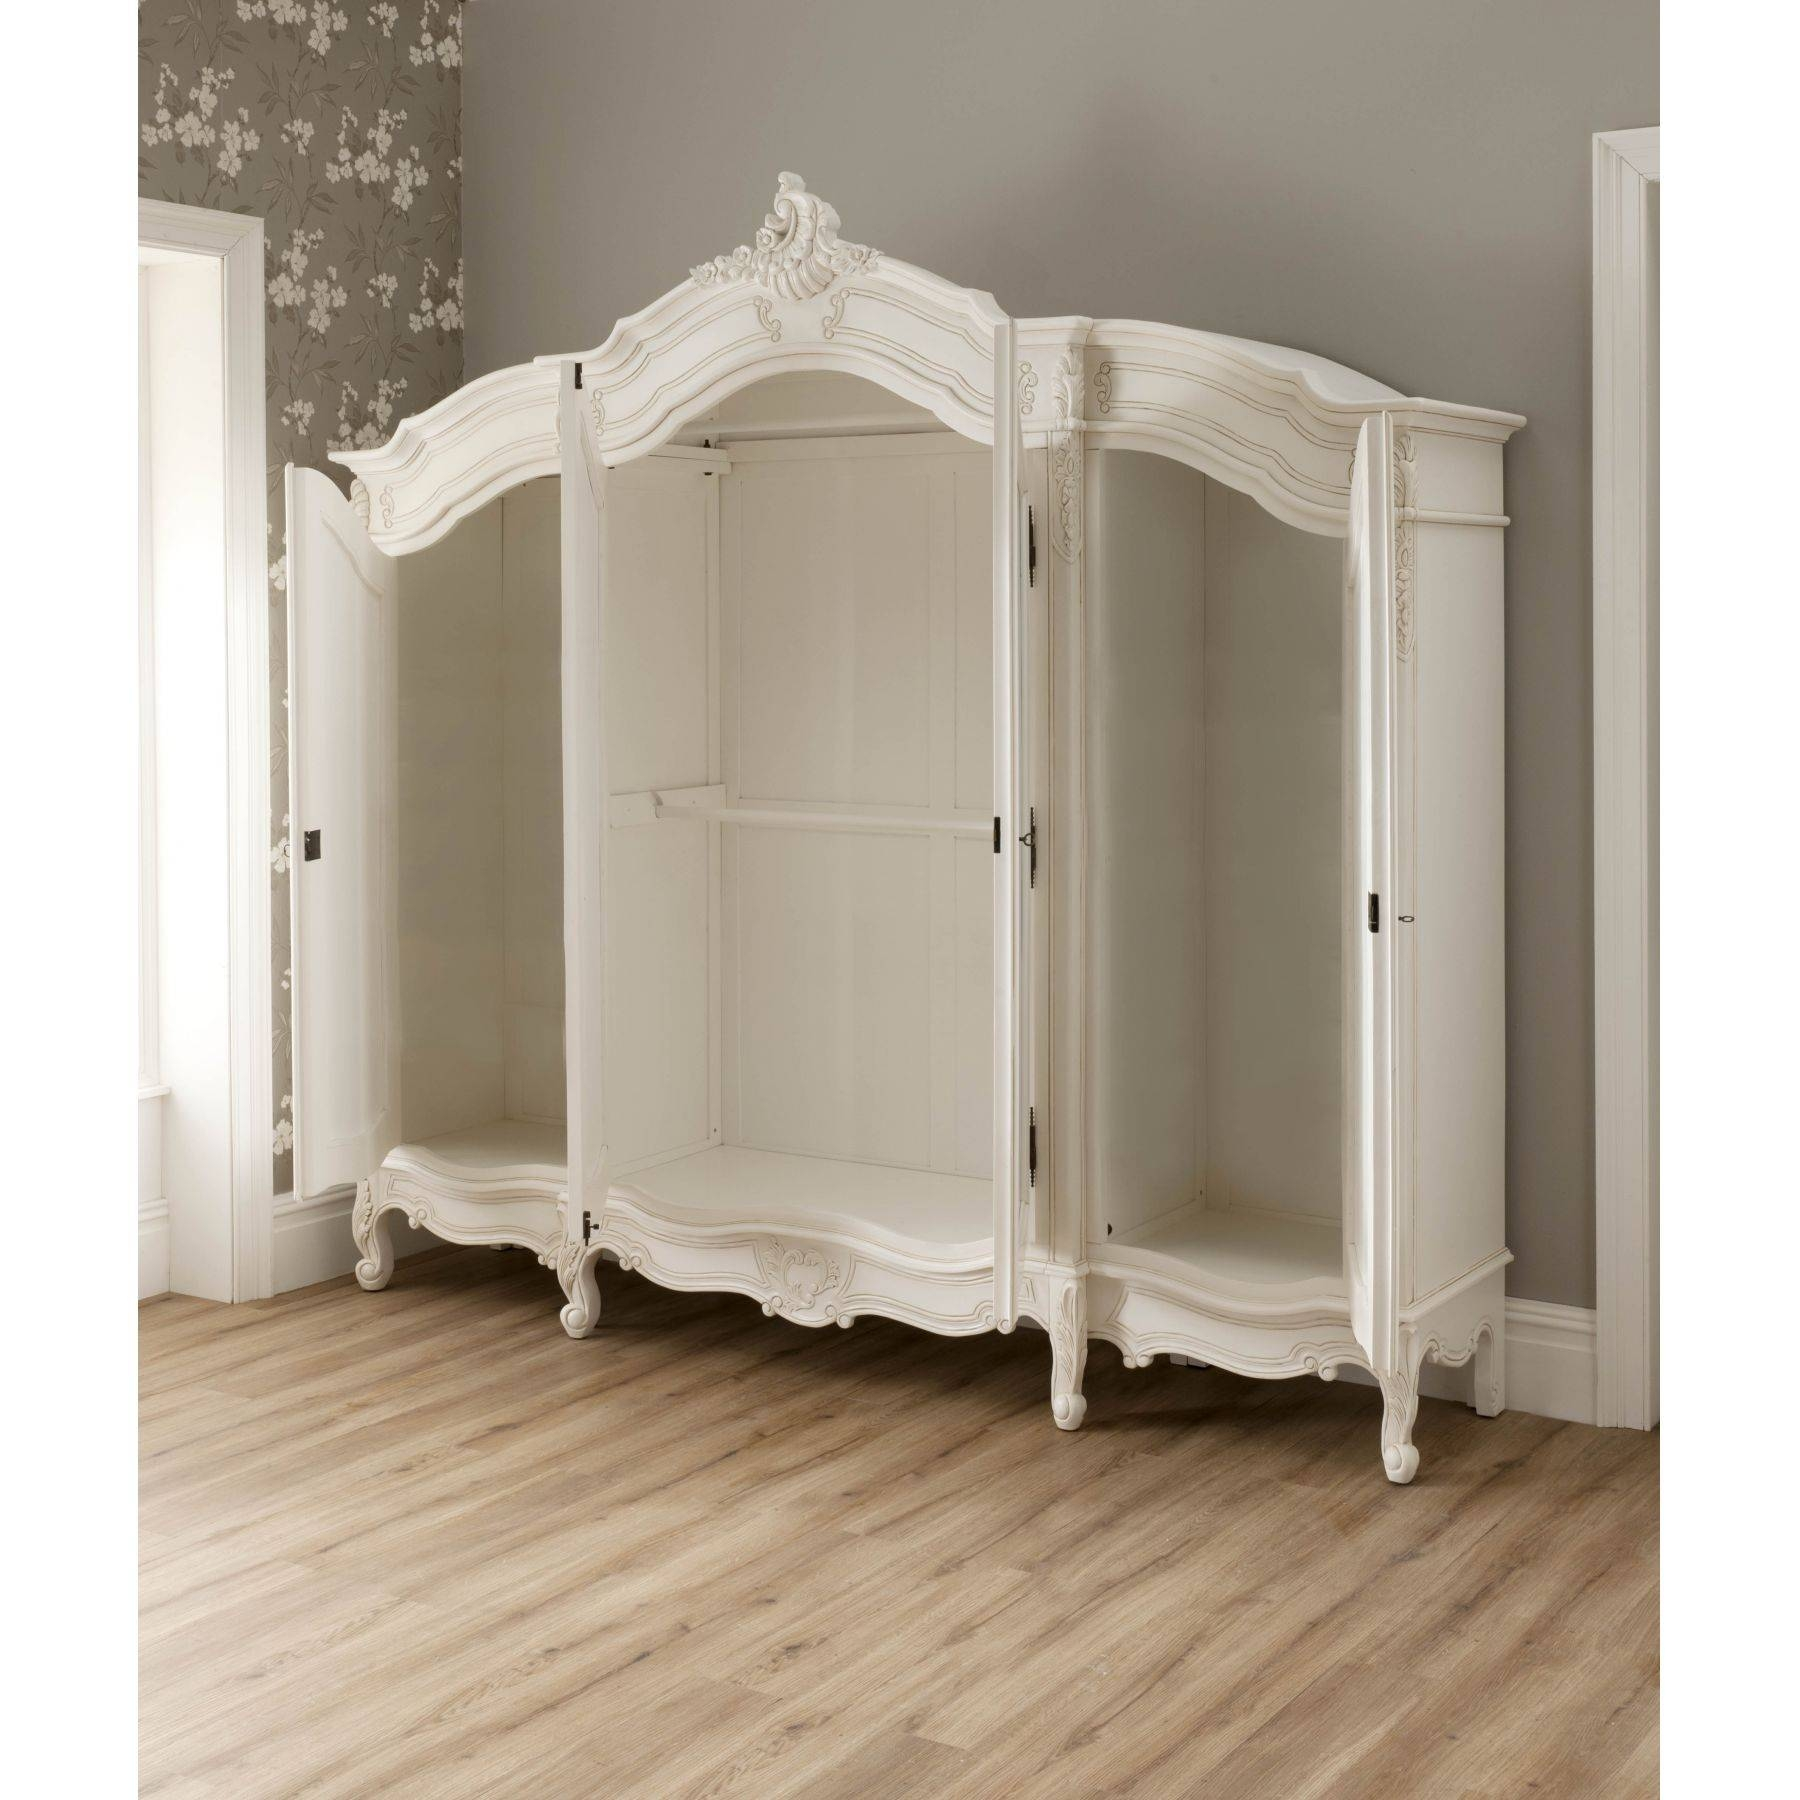 Rochelle 4 Door Antique French Wardrobe with regard to French Armoires Wardrobes (Image 13 of 15)